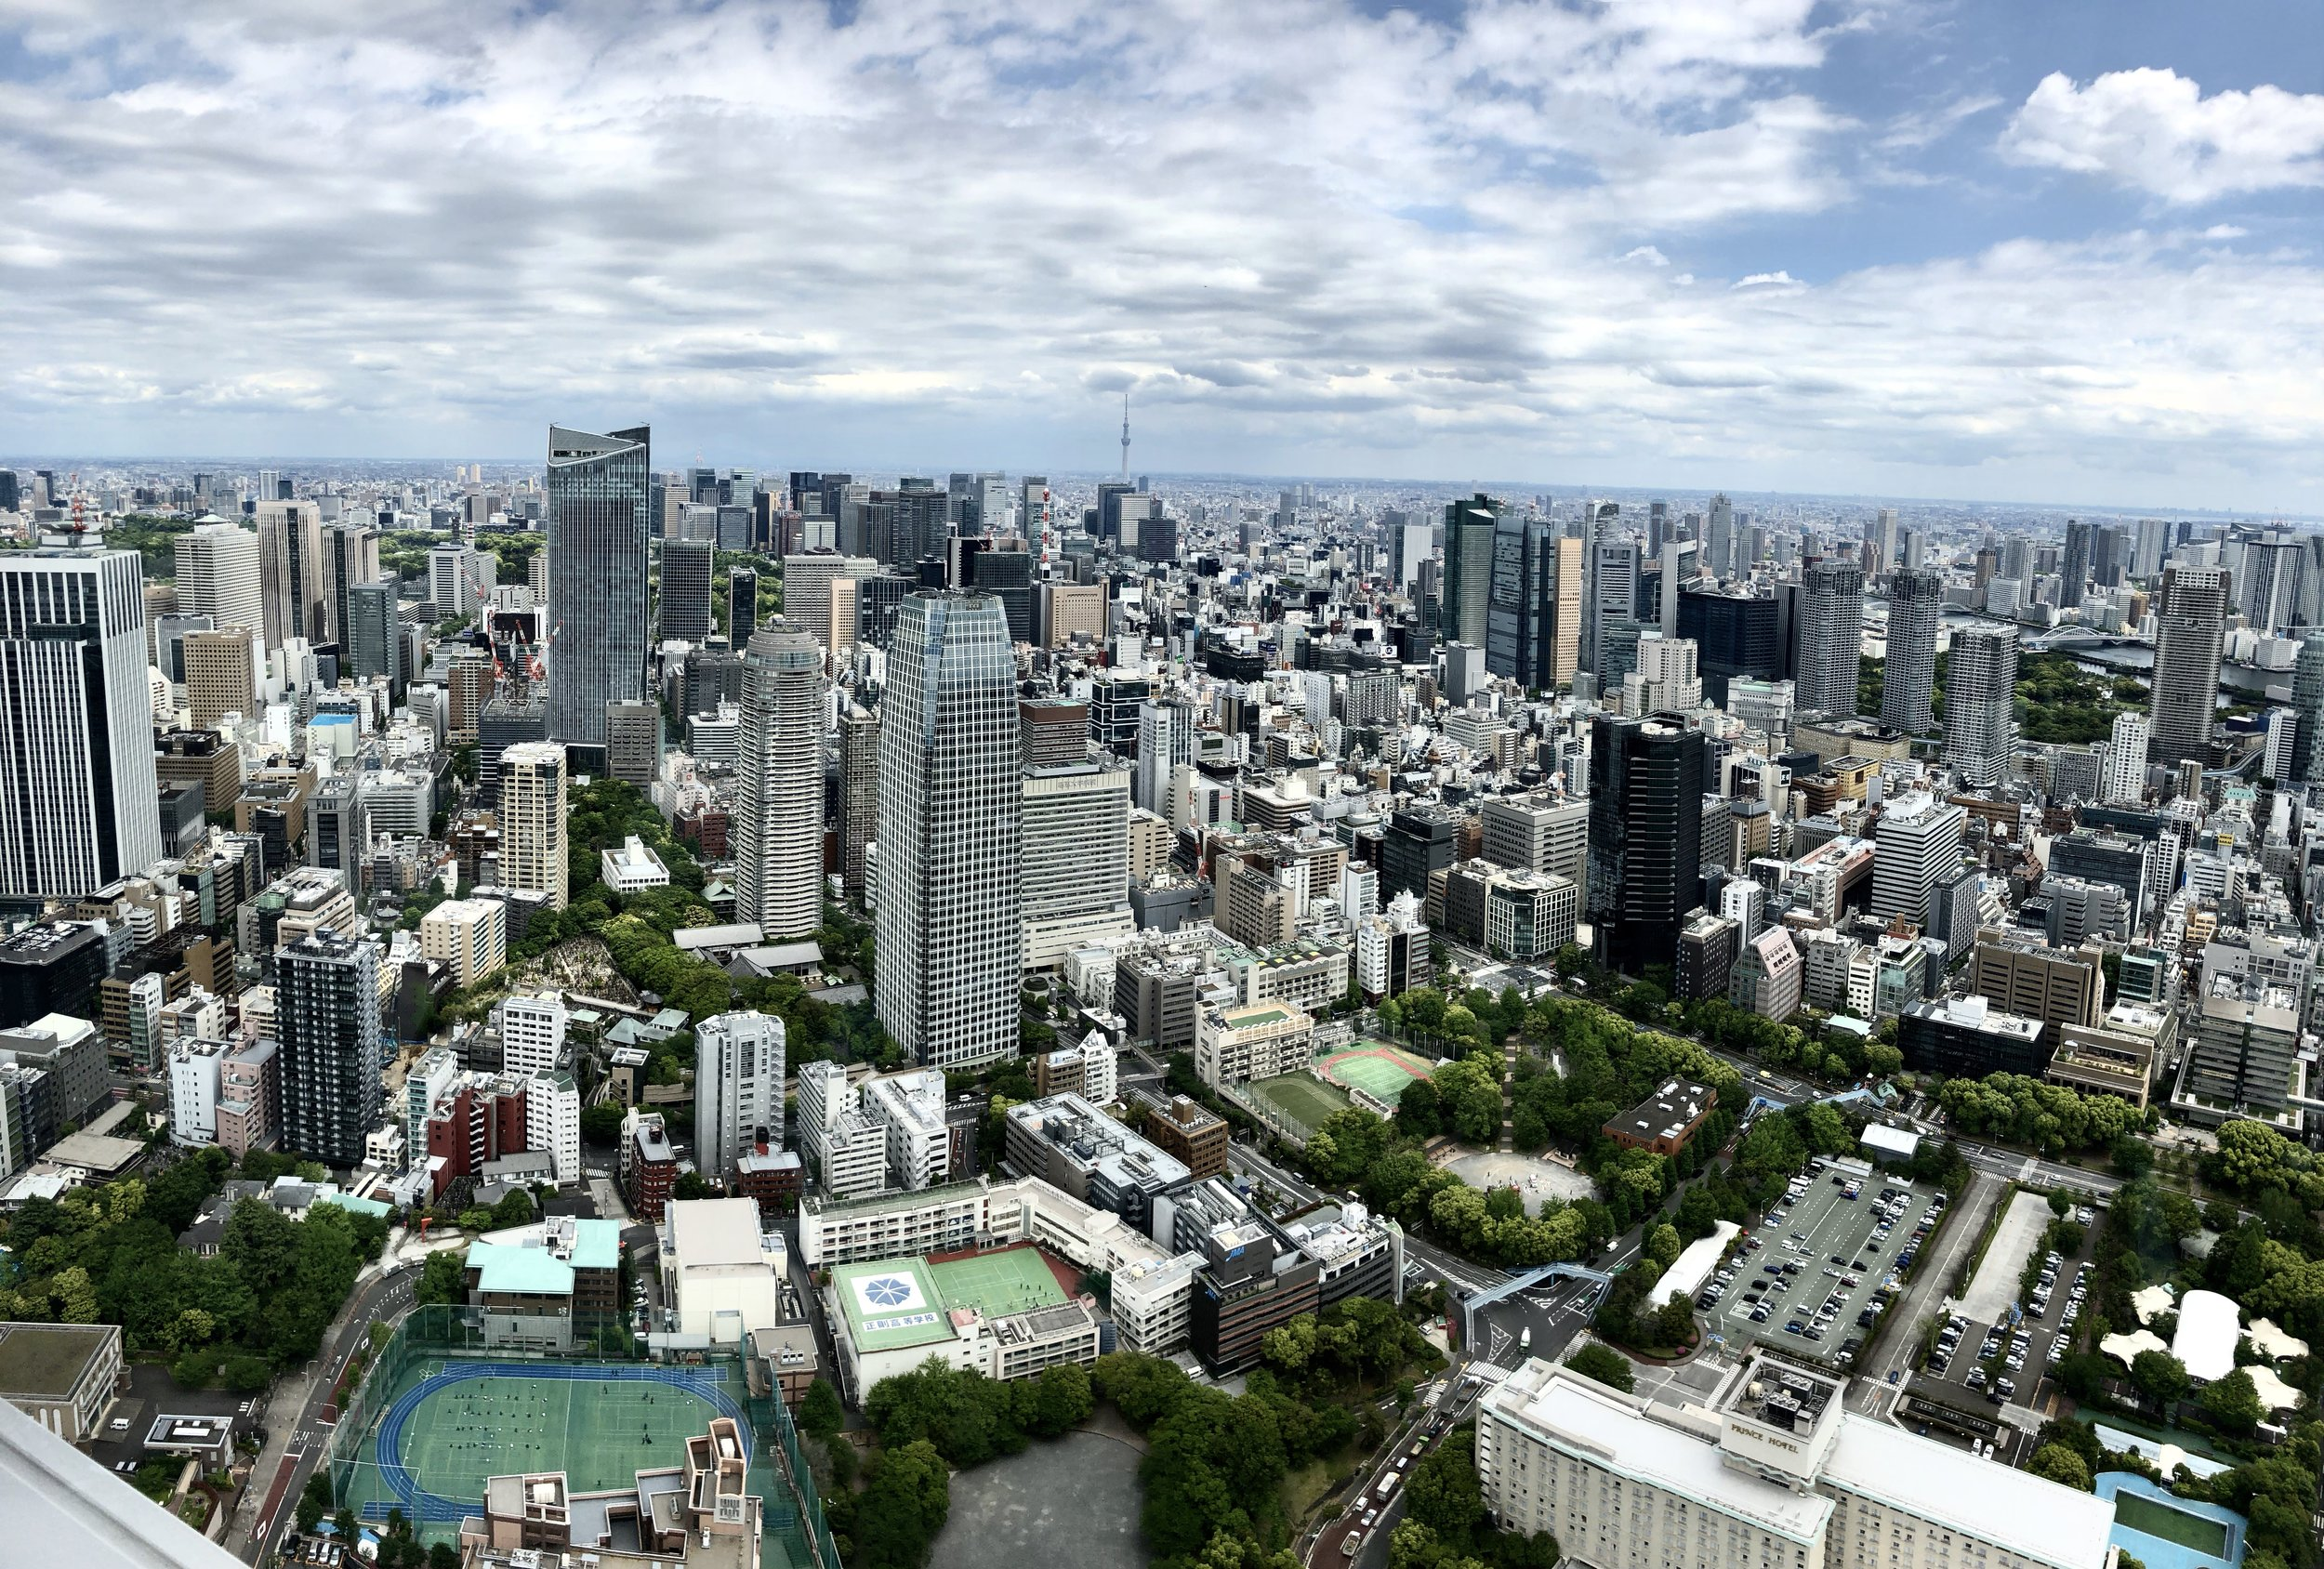 View from top deck at Tokyo Tower